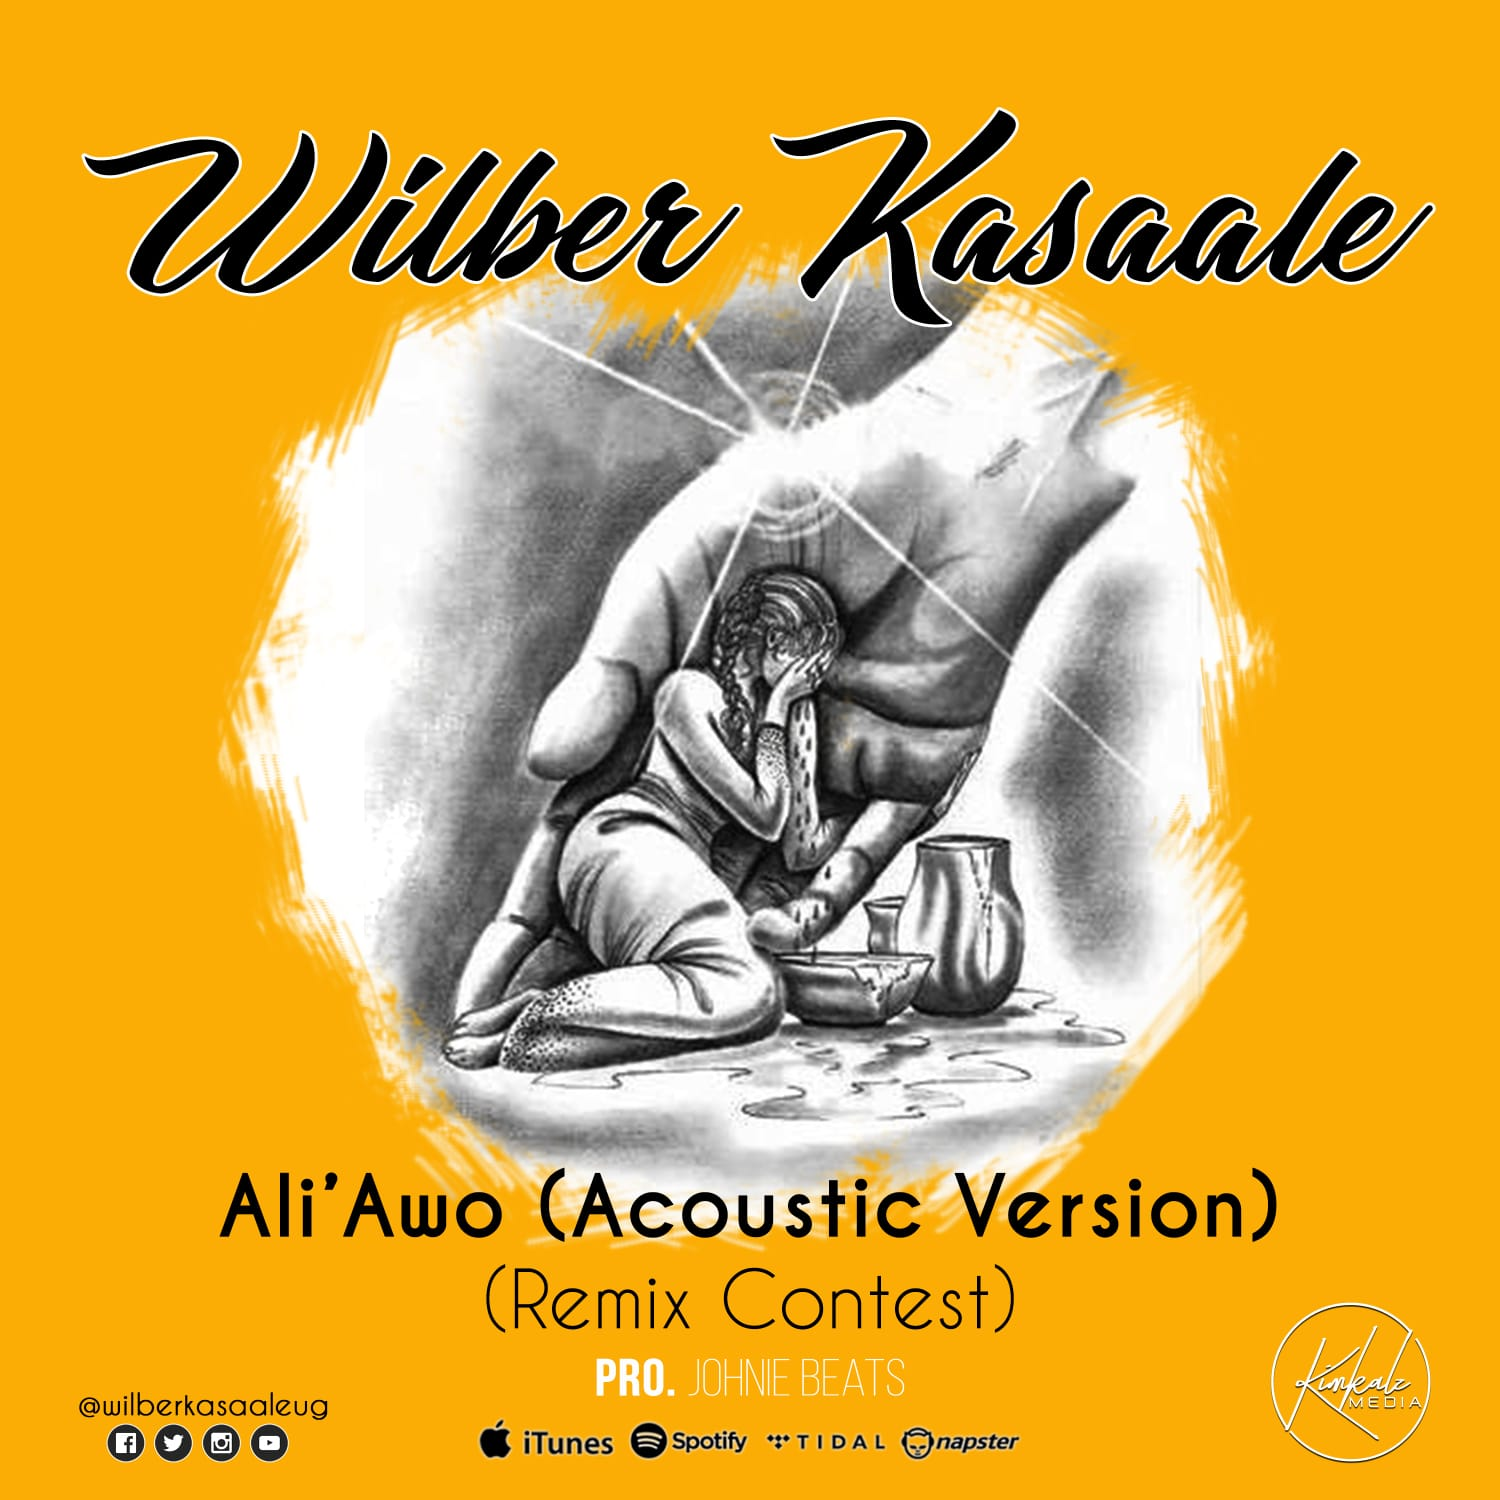 Wilber Kasaale with Ali Awo acoustic version